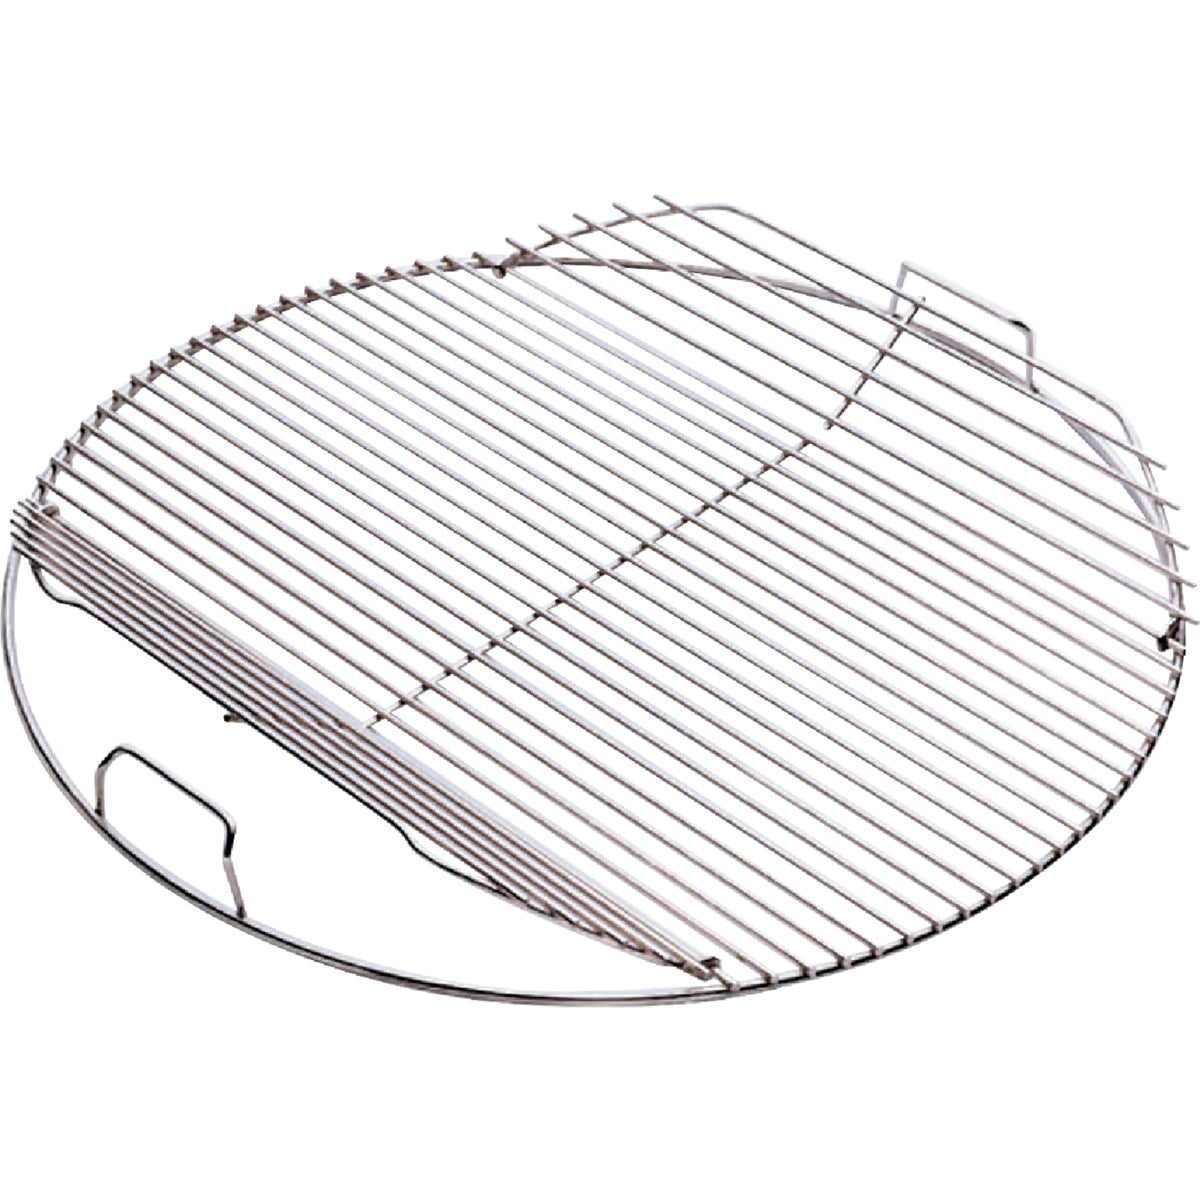 "18.5"" HINGD KETTLE GRATE - 7433 by Weber"